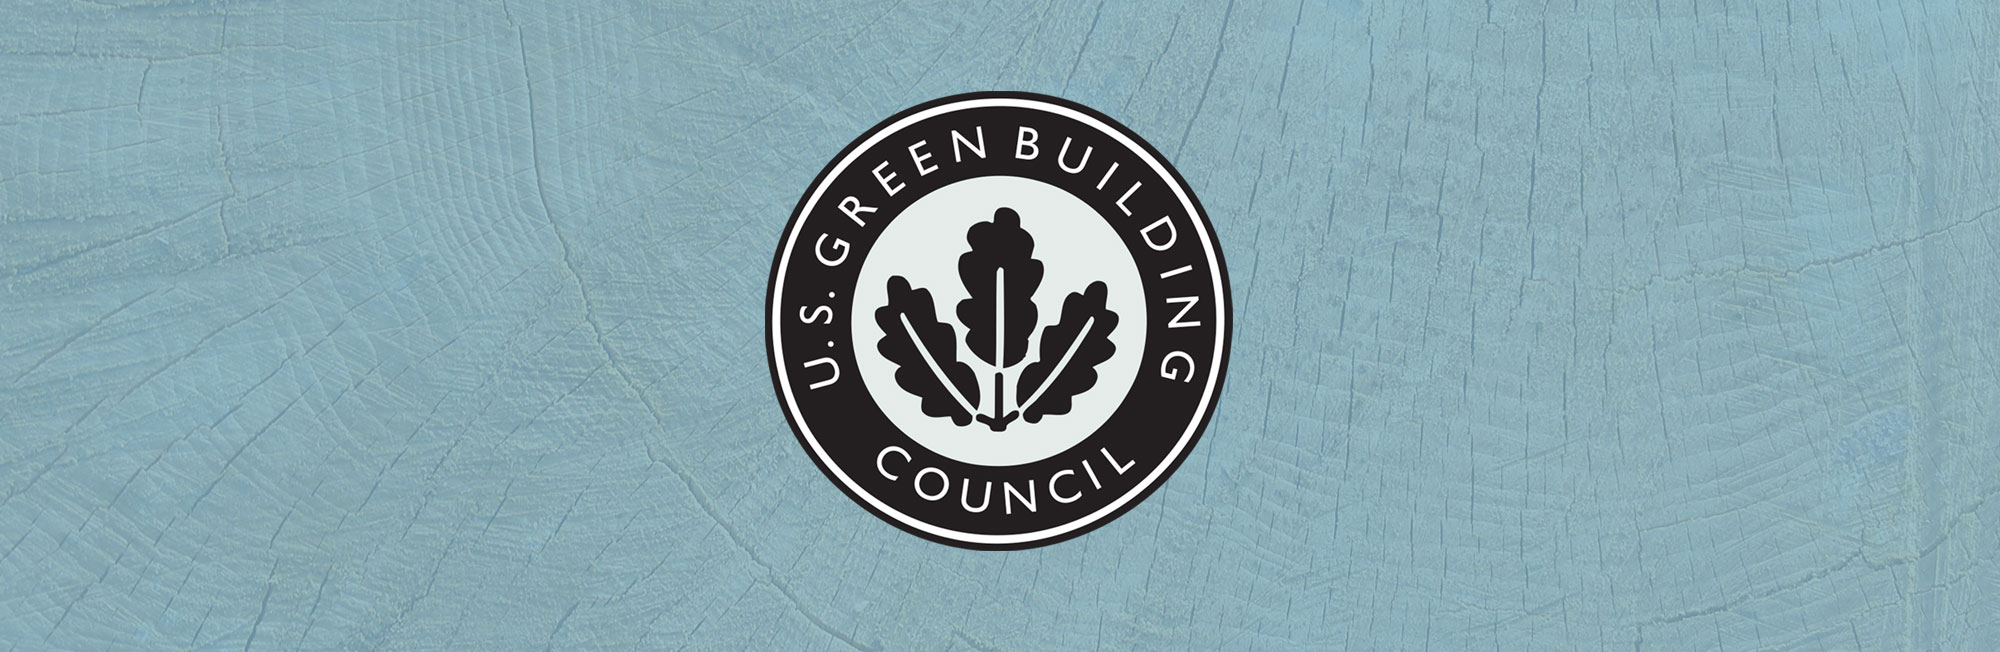 leed for commercial interiors green building rating system